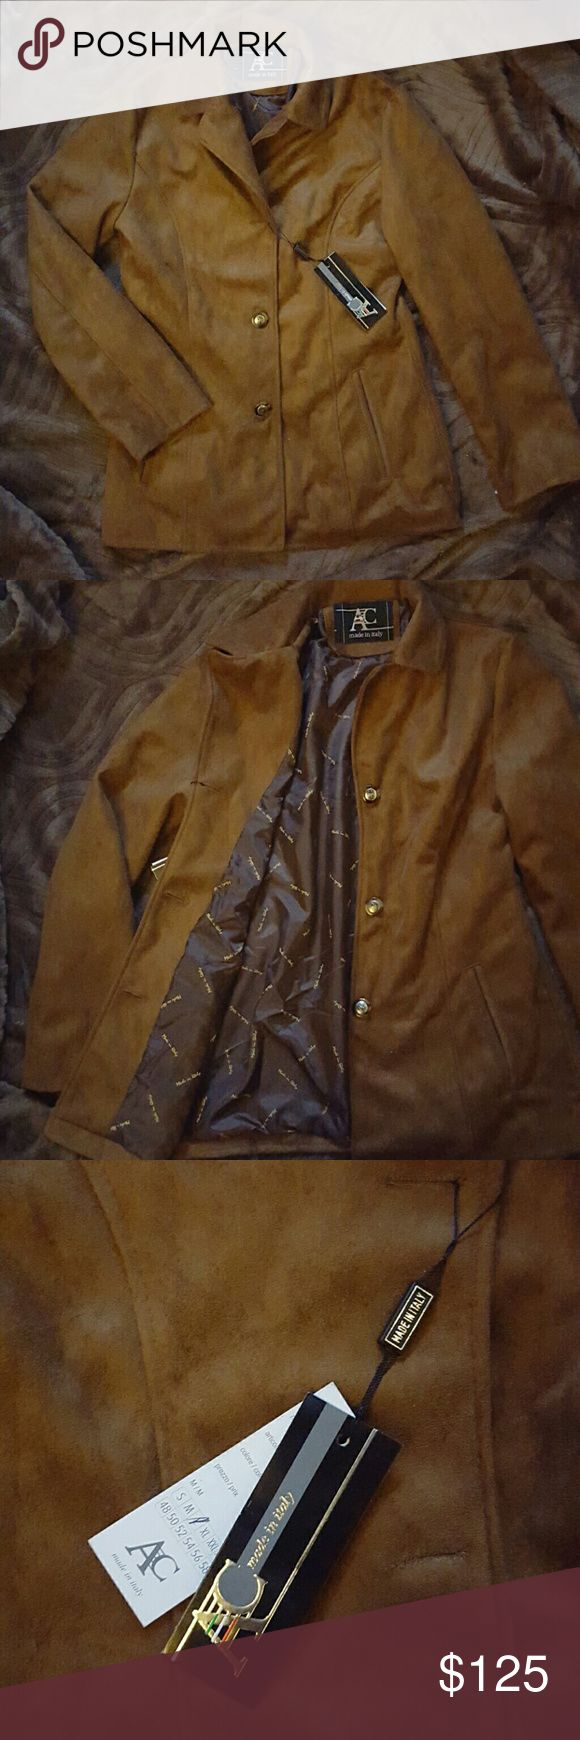 Genuine Suede Jacket NWT. Real suede, with polyester lining on the inside. Just a tad too big for me. NOT ARMANI EXCHANGE, BUT SIMILAR CUT AND DESIGN. Armani Exchange Jackets & Coats